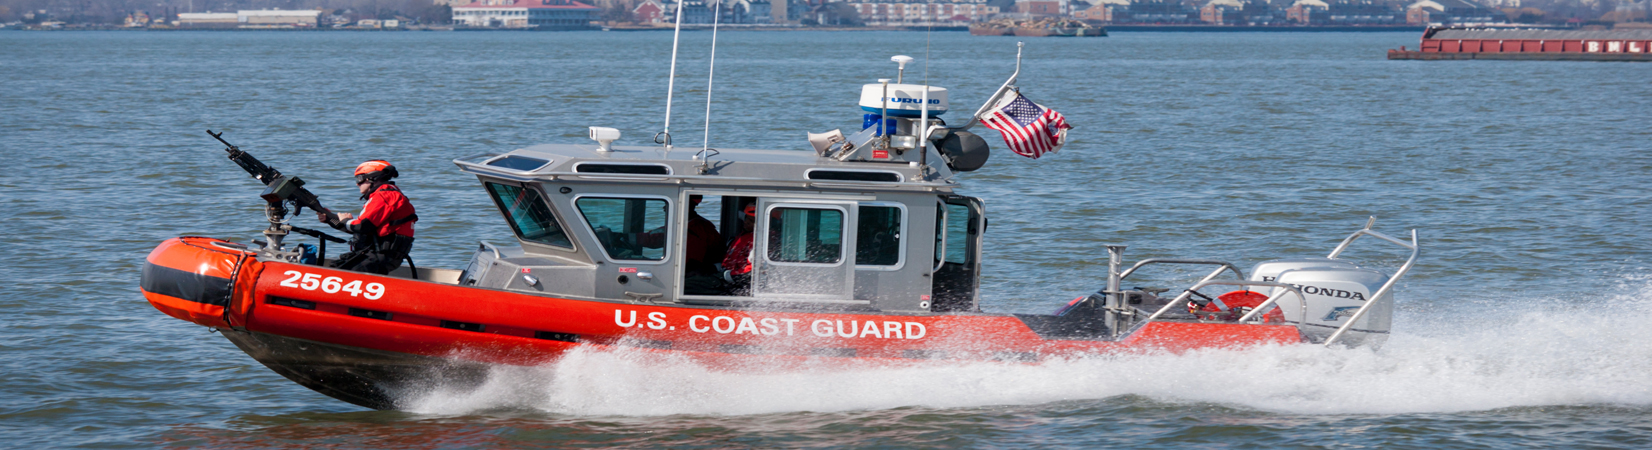 United States Coast Guard Vessel Underway